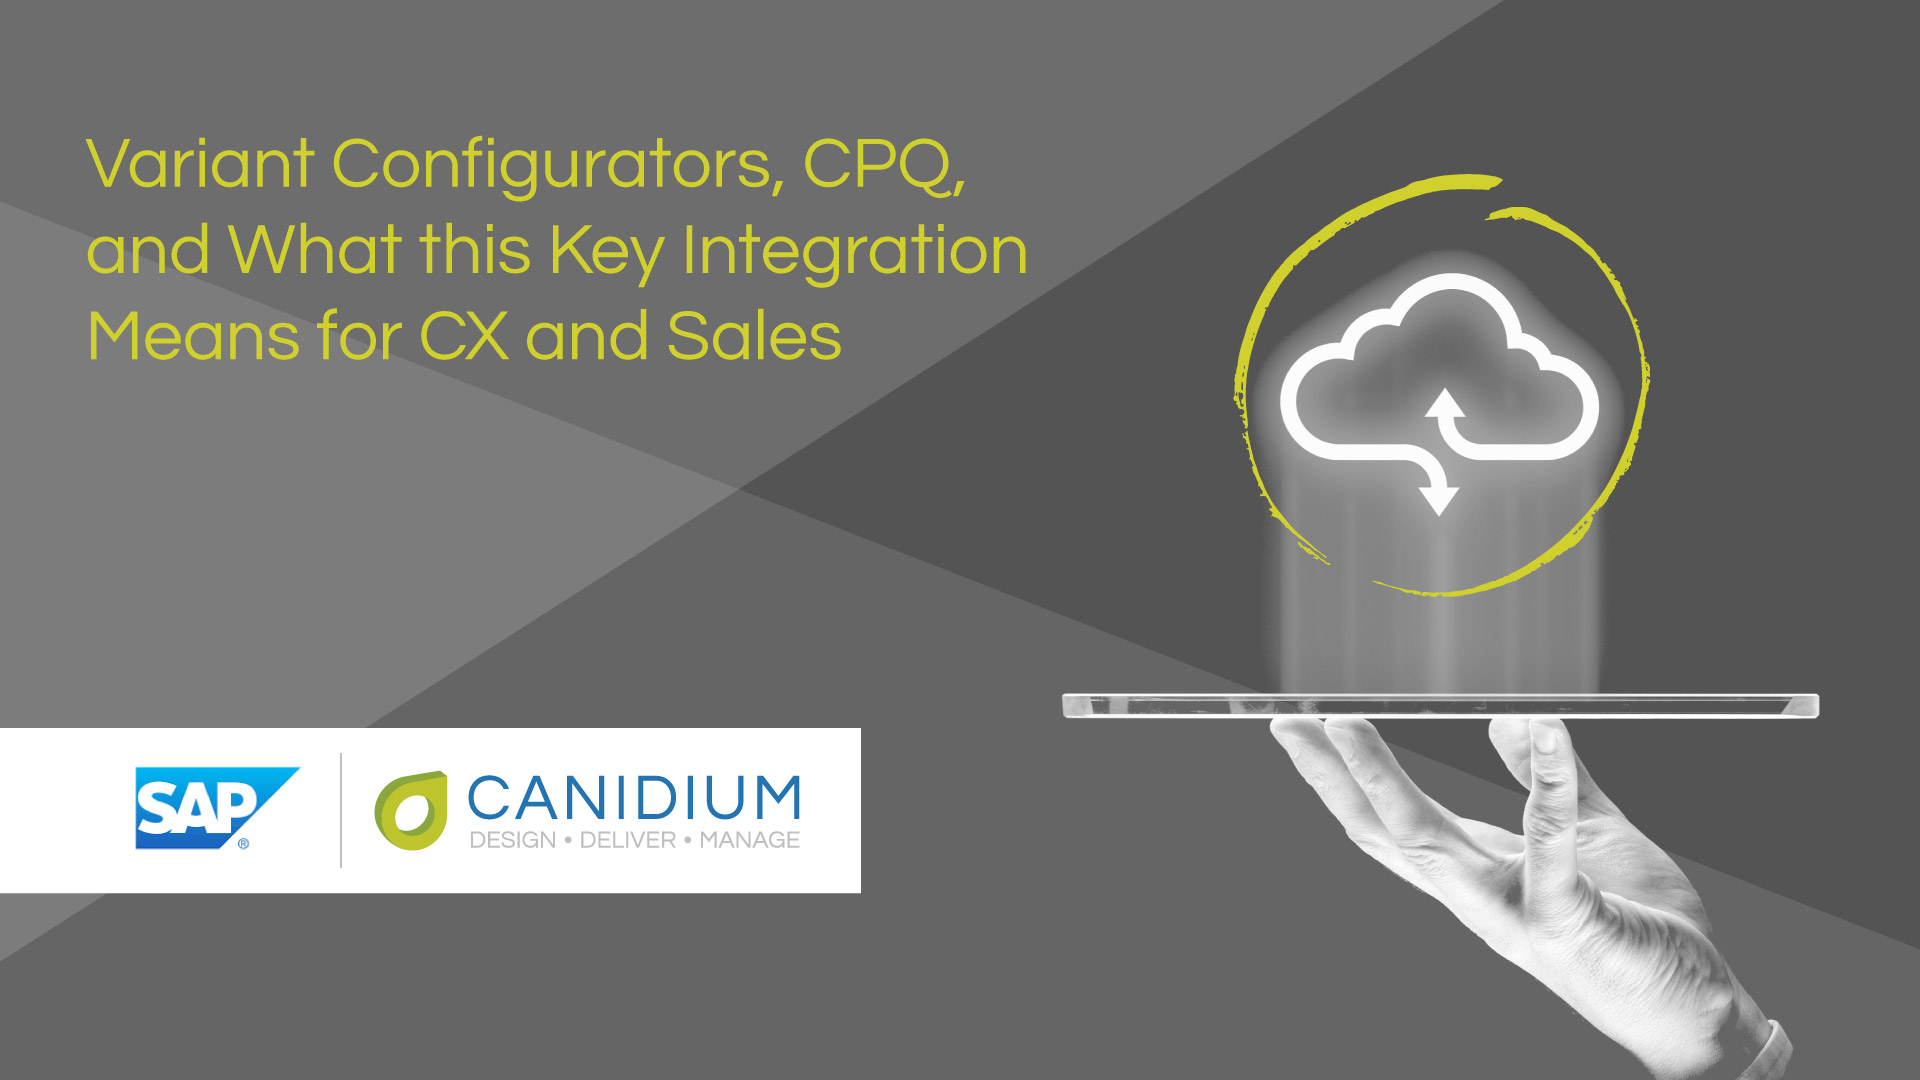 Variant Configurators, CPQ, and What this Key Integration Means for CX and Sales